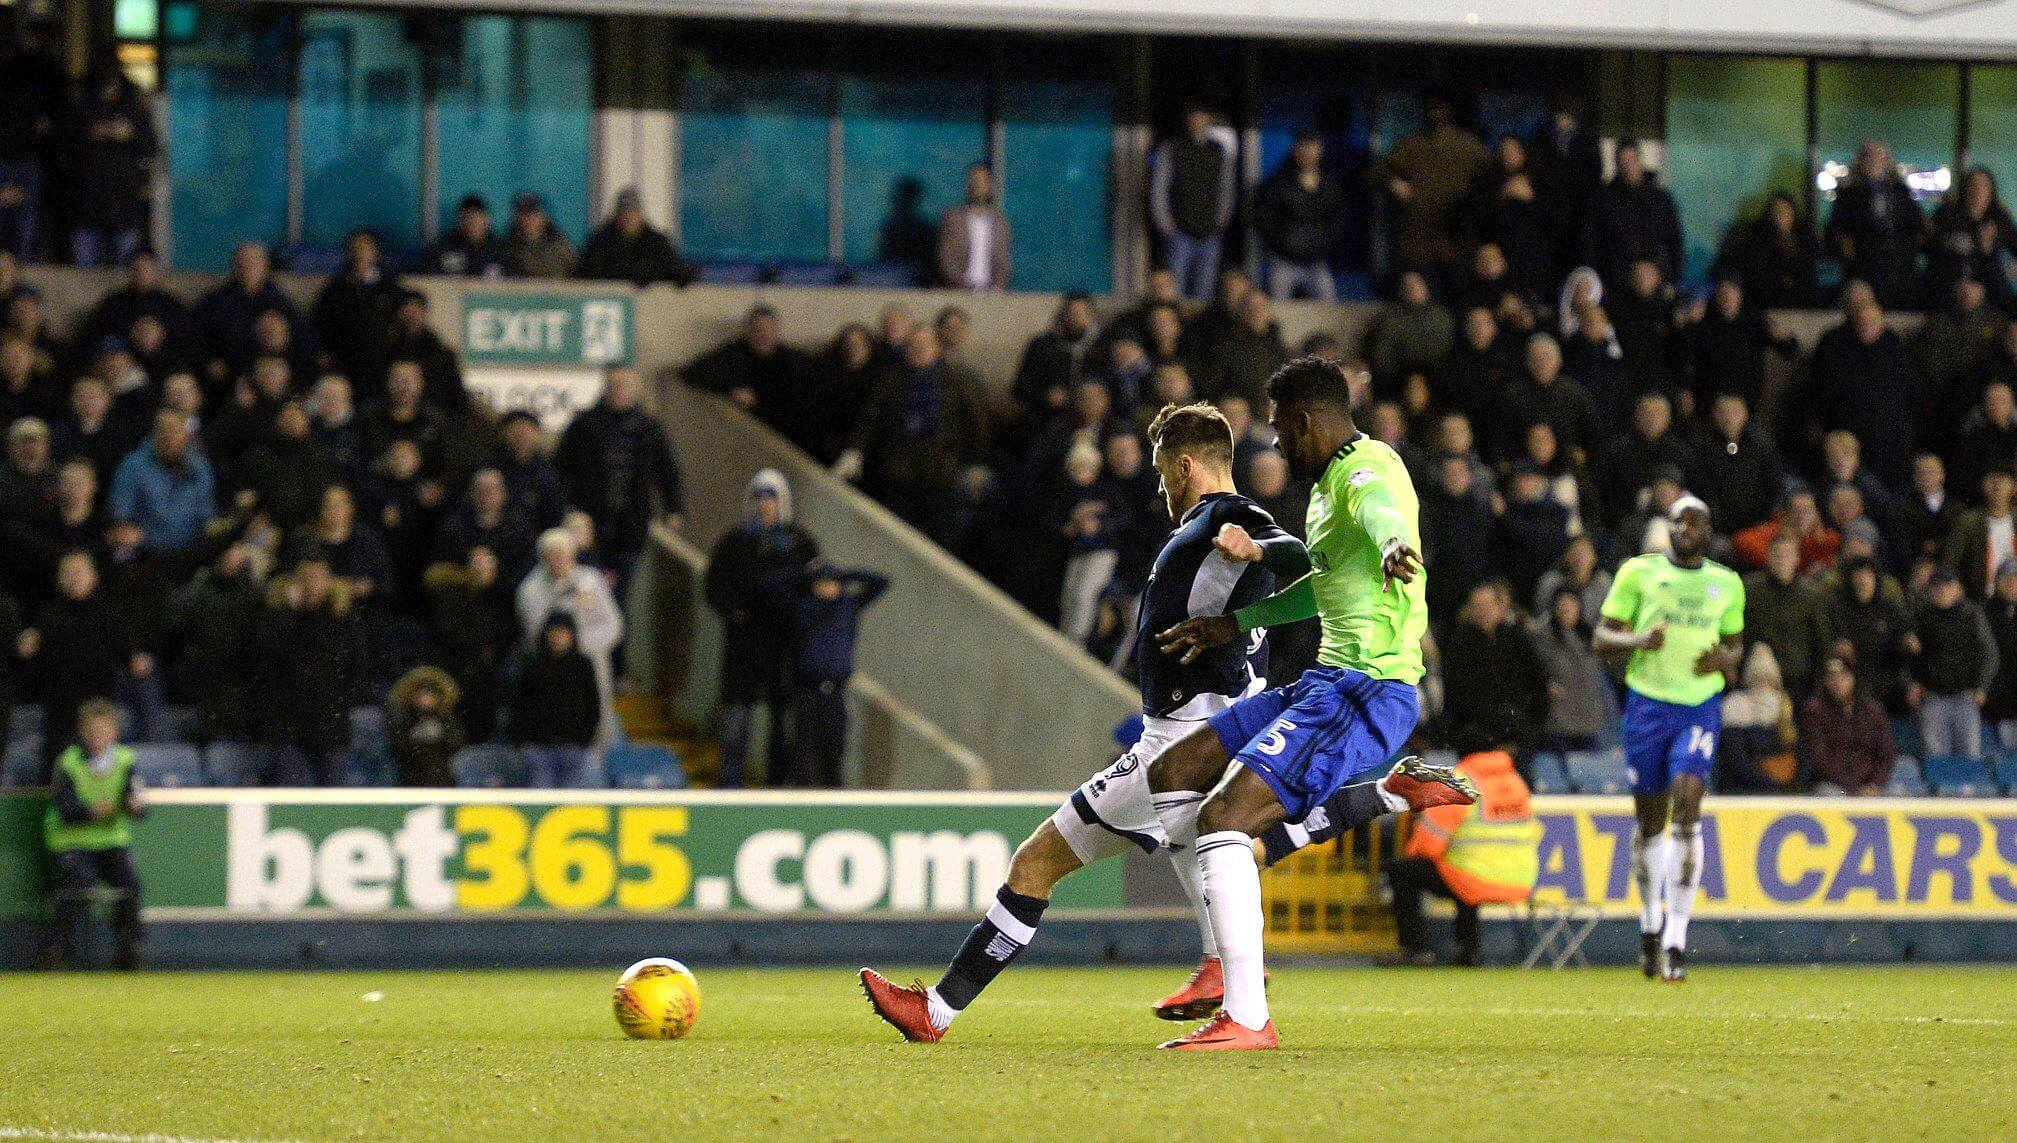 Warnock Frustration As Disallowed Goal Gifts Millwall A Point